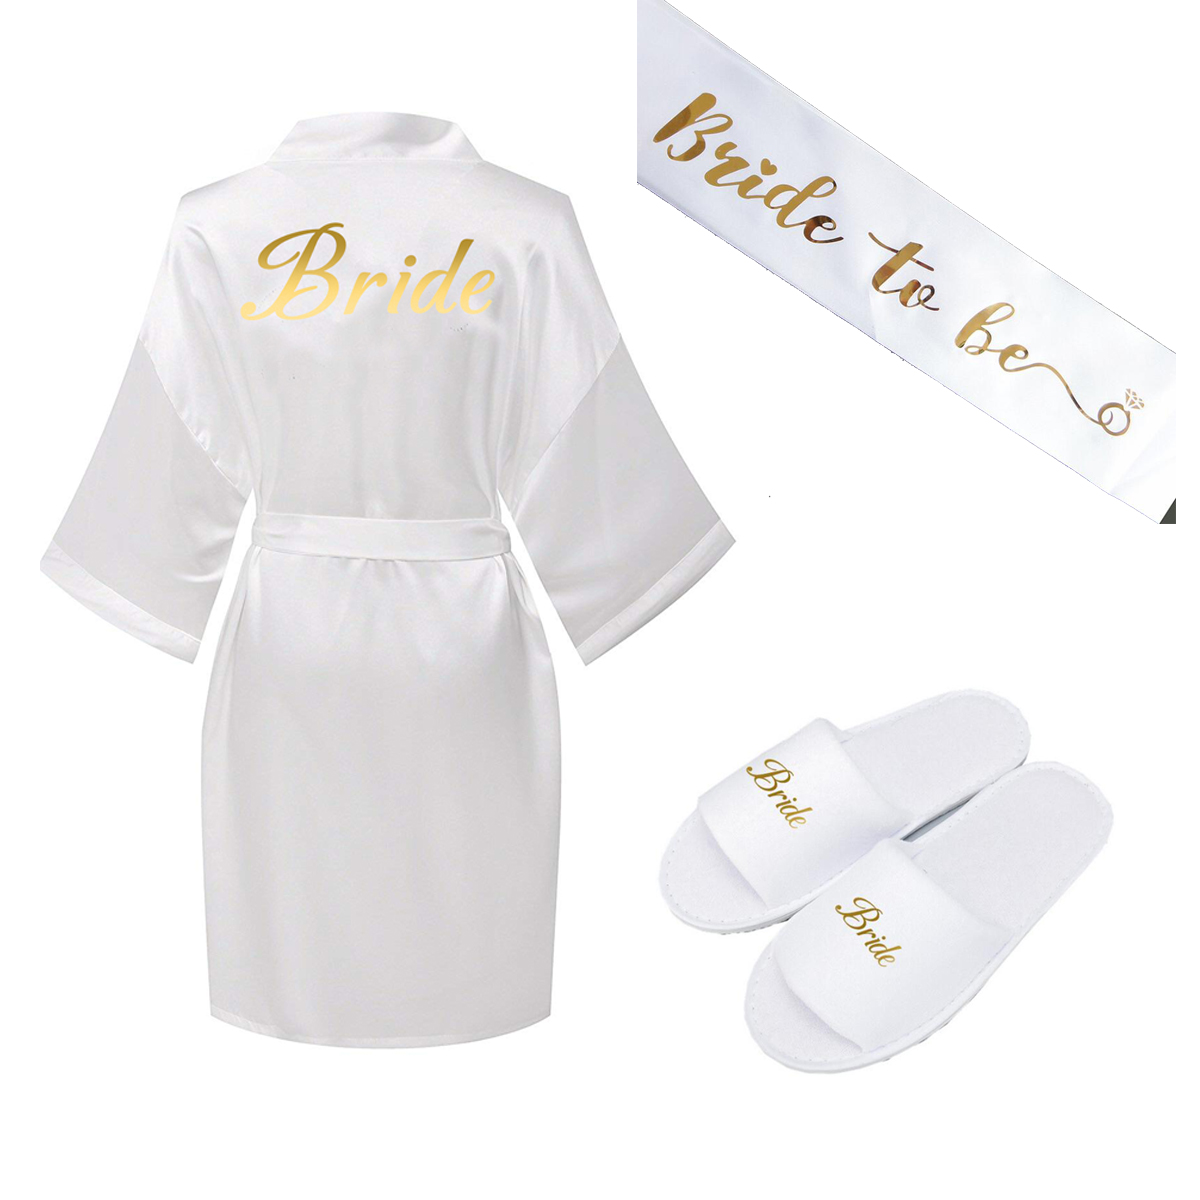 Zaxachilable 2019 NEW One Set  Satin Silk Robe Bride Robes Bride Slippers White Bride Robes Gold Print 001 Women Robe